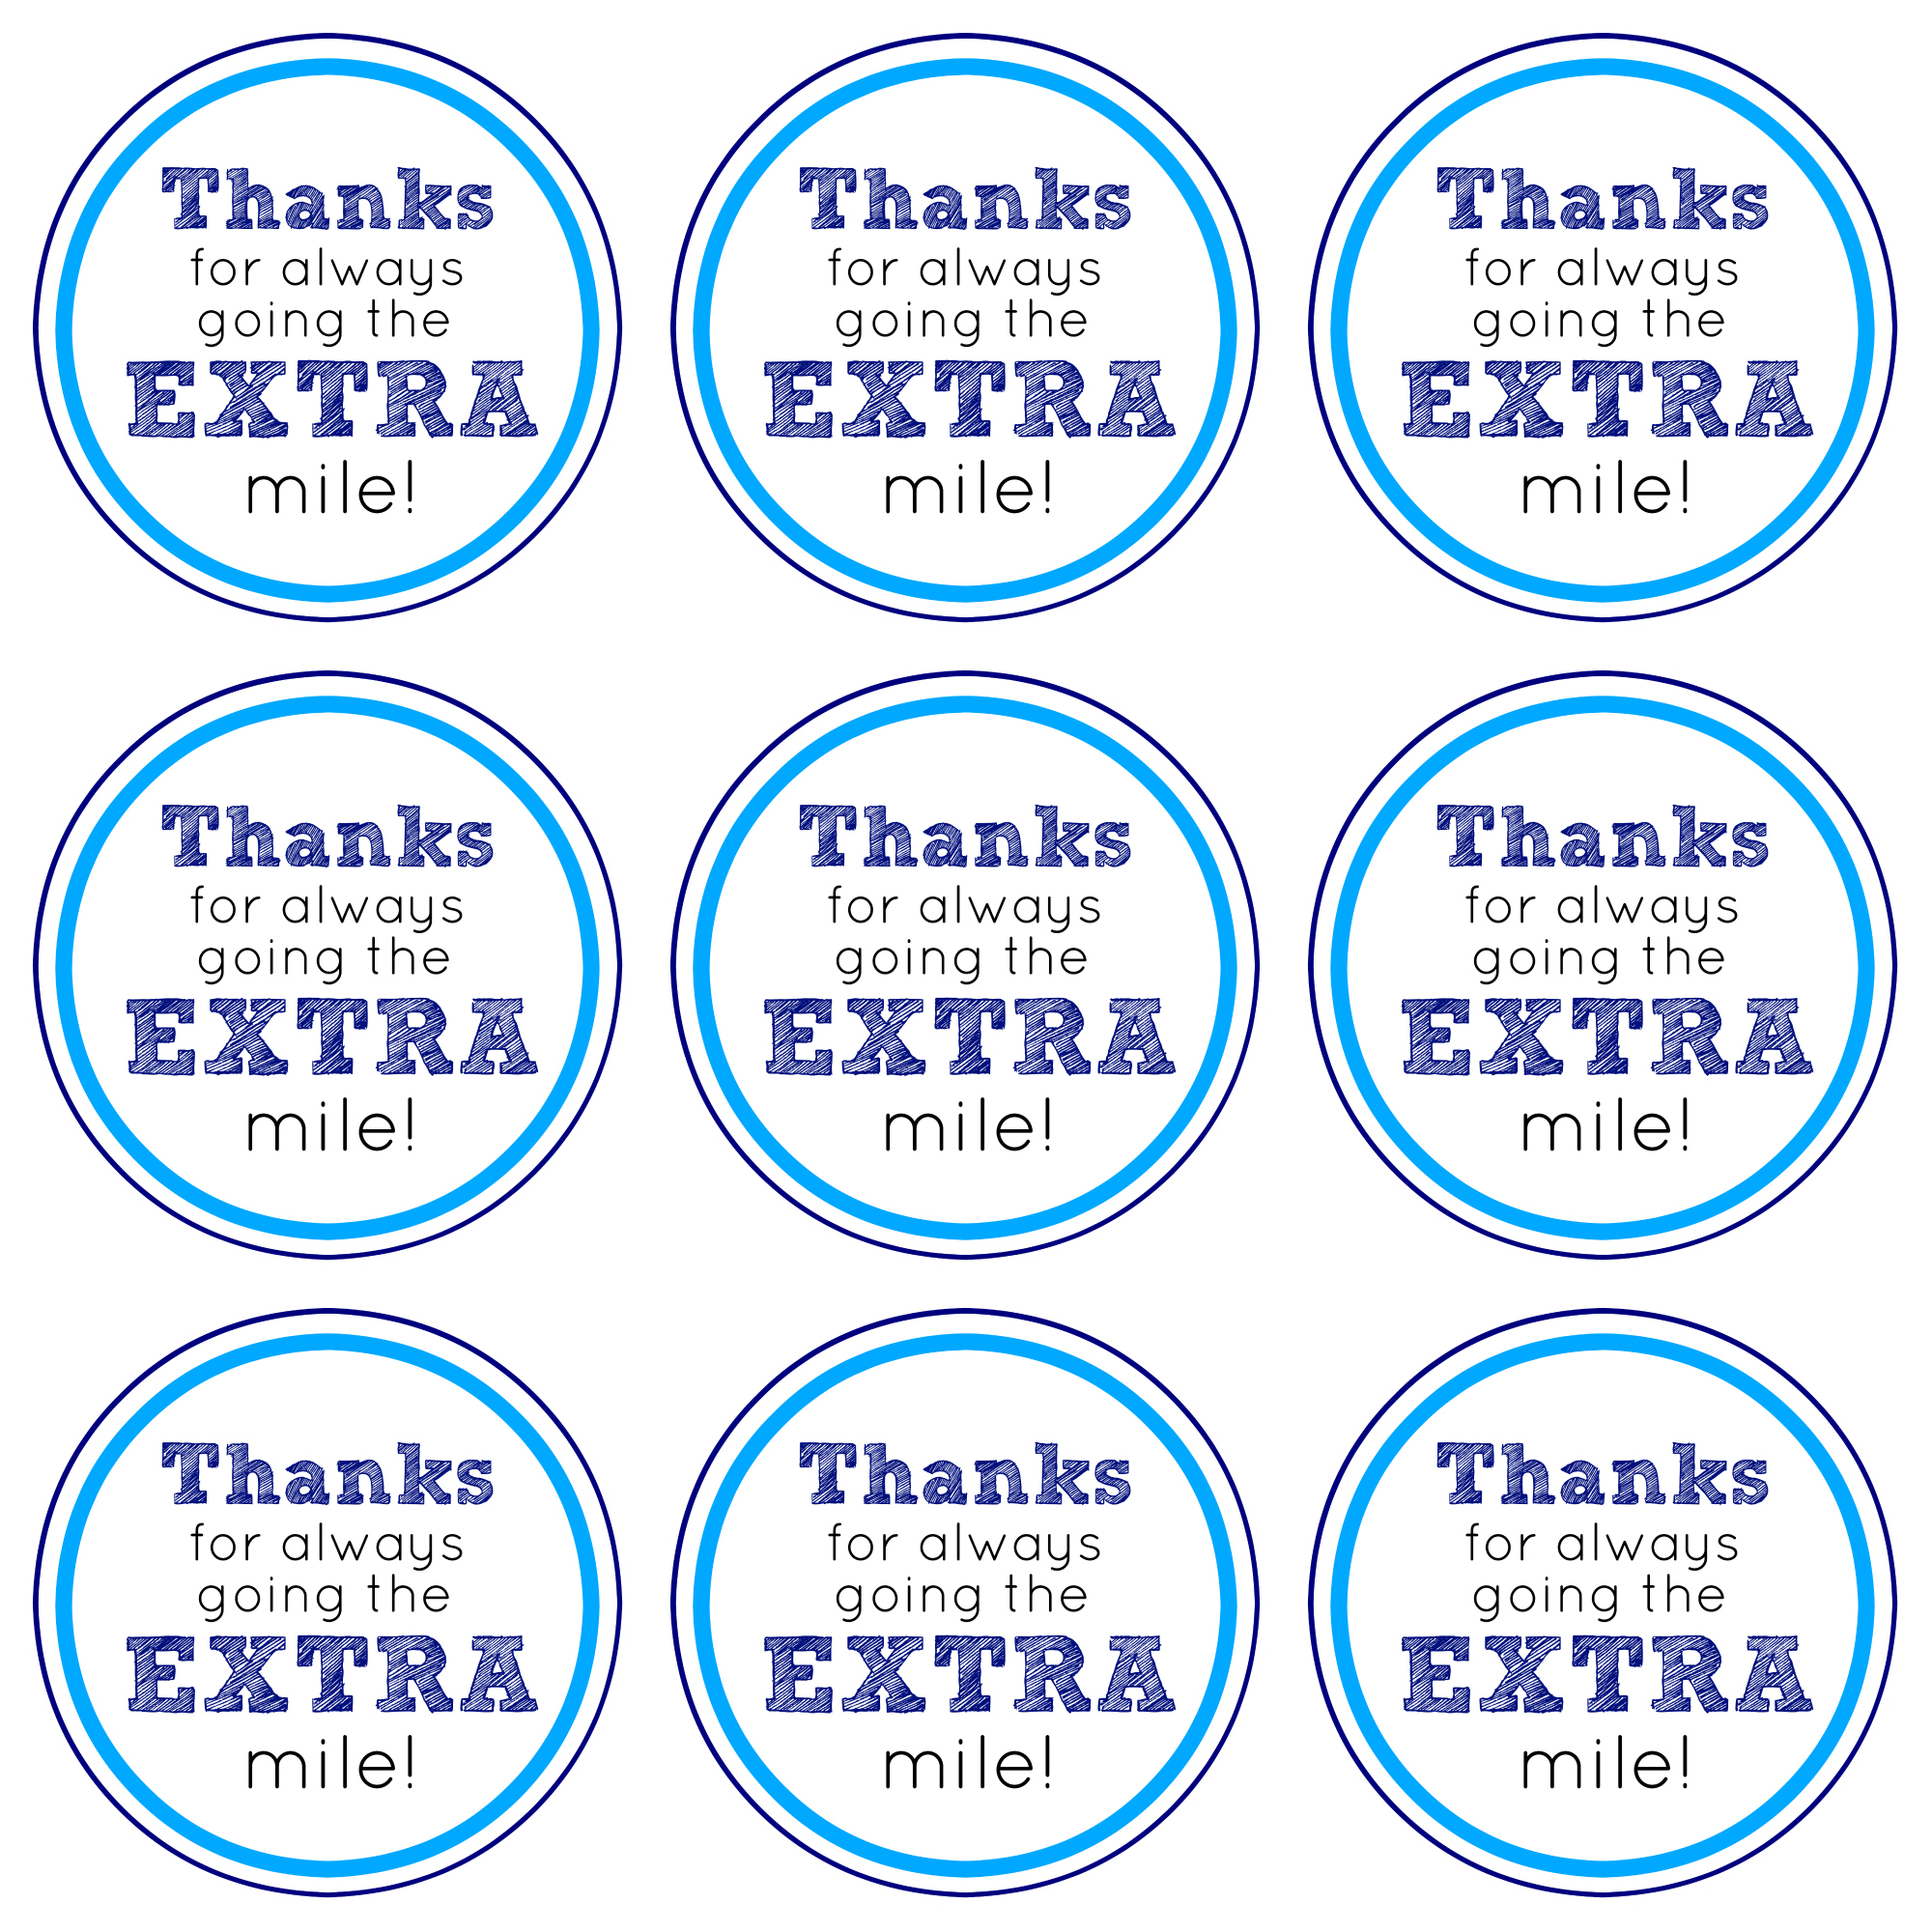 image about Extra Gum Teacher Appreciation Printable named Deliver More this Family vacation Time - Reward Notion + Totally free Printable